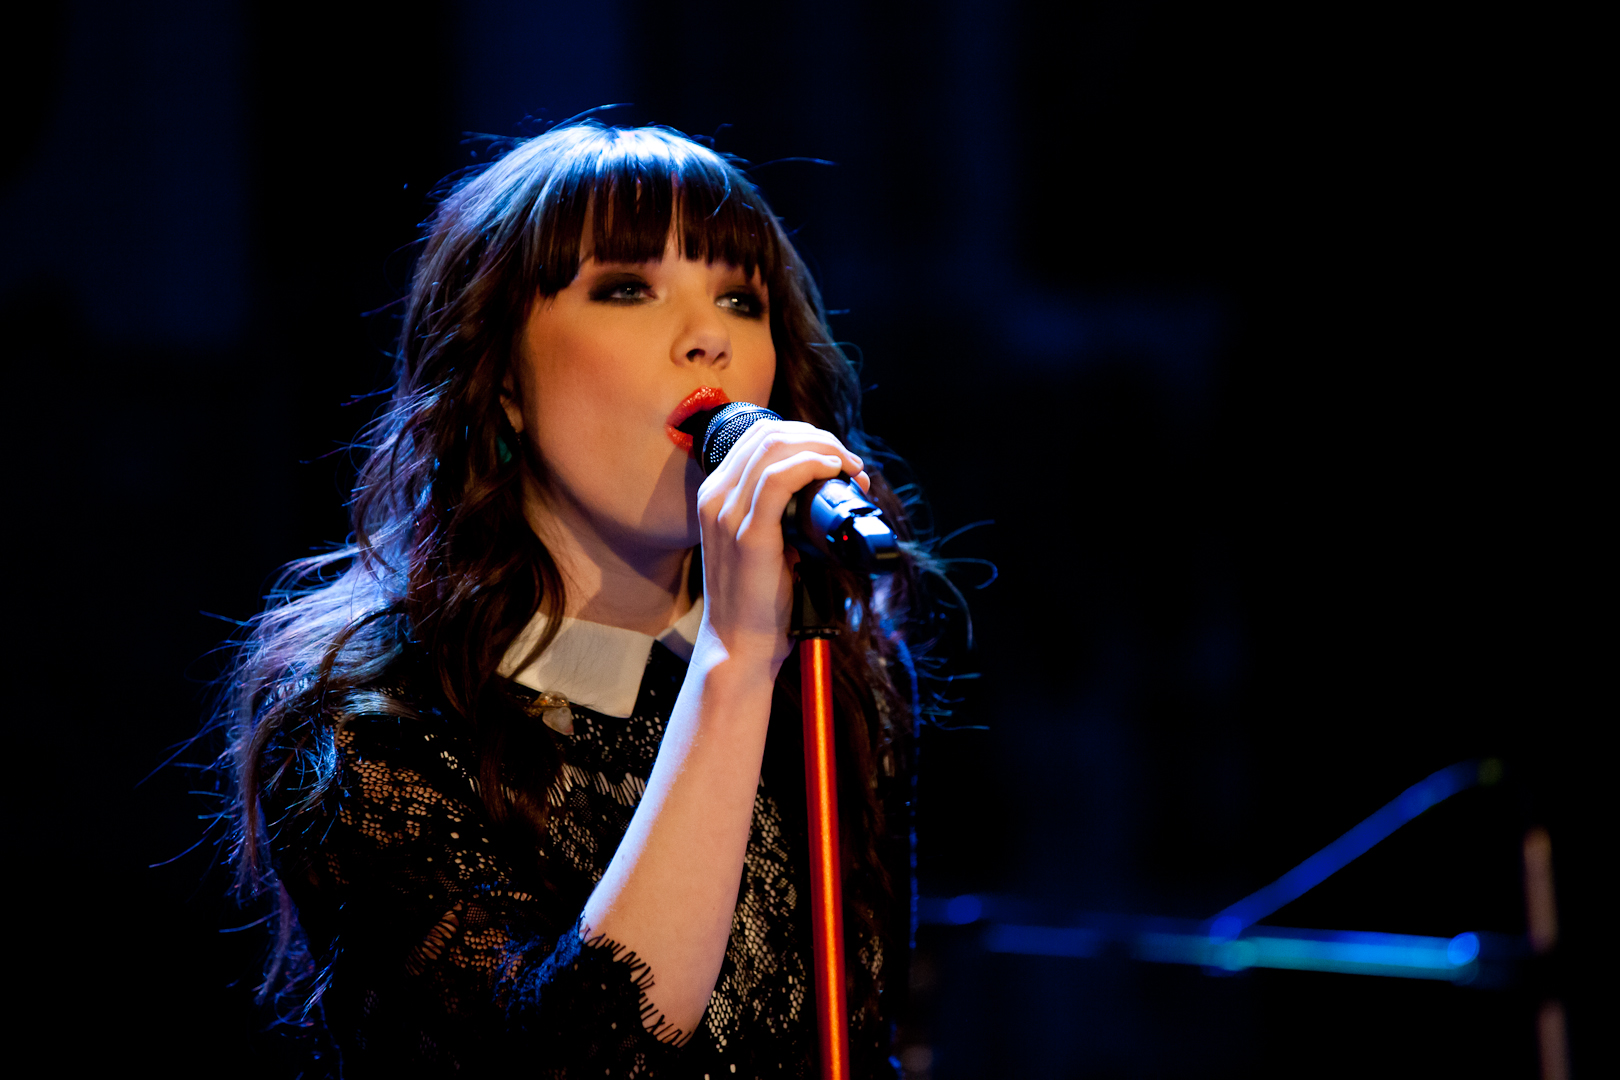 Carly Rae Jespen: Carly Rae Jepsen At Spring Lawnparties?